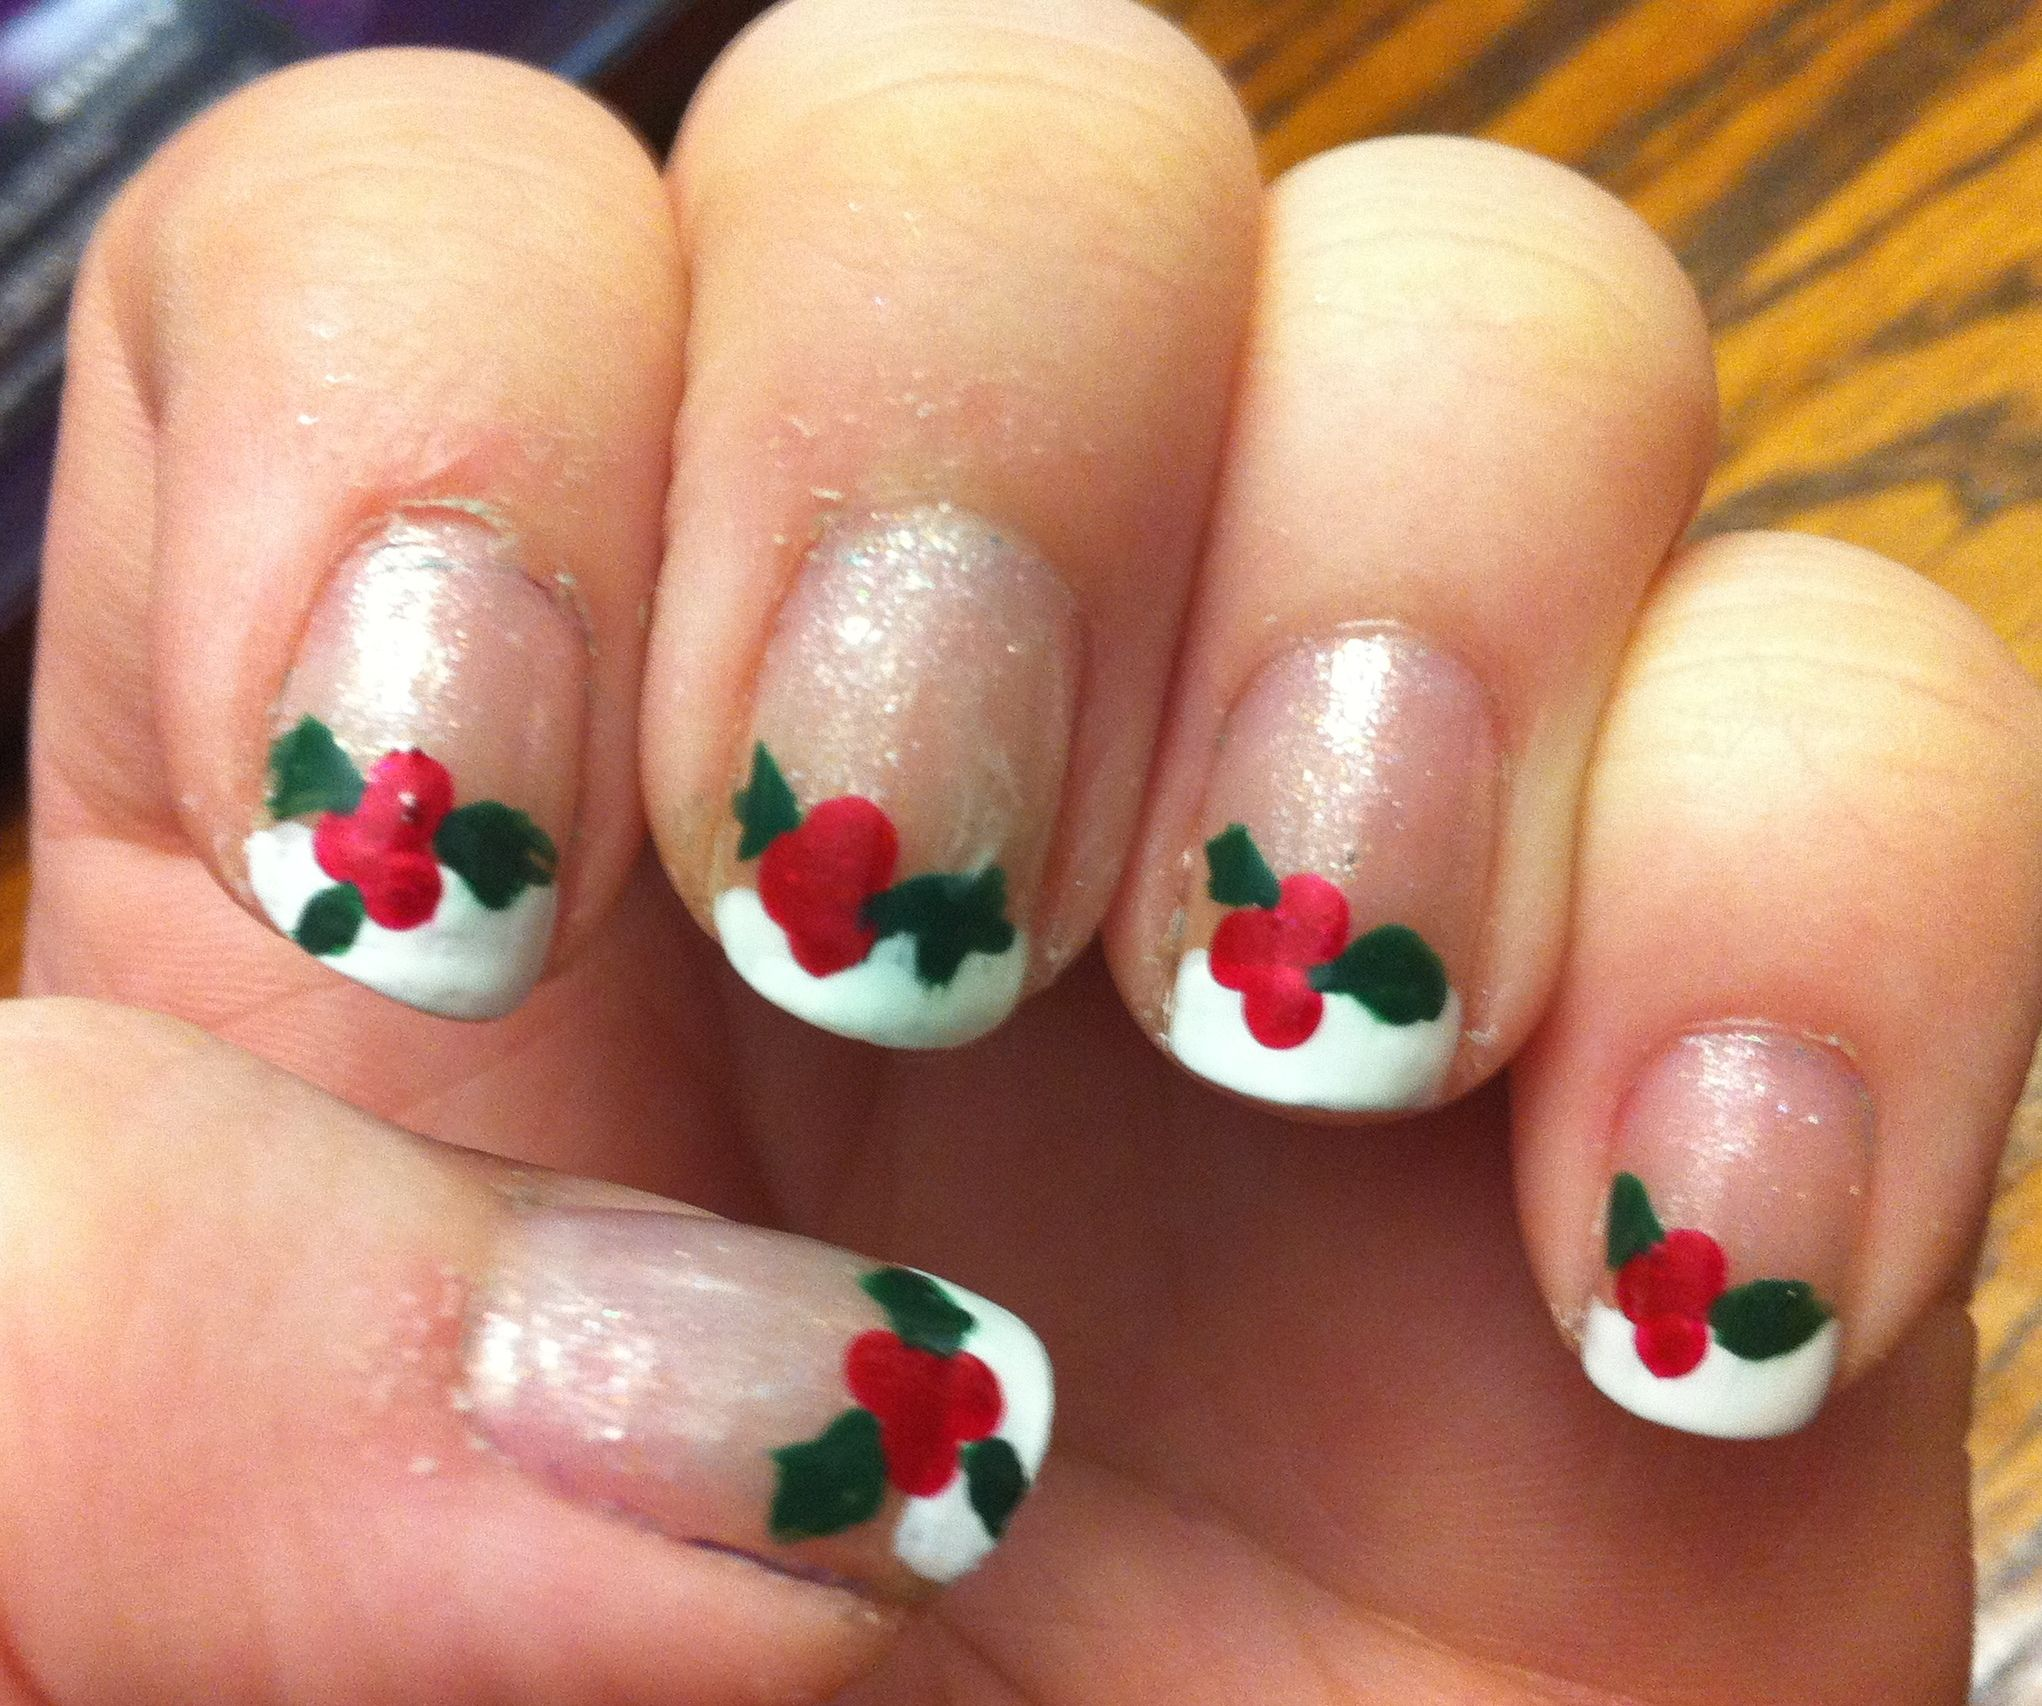 Here is my festive take on a french manicure! All done by me.